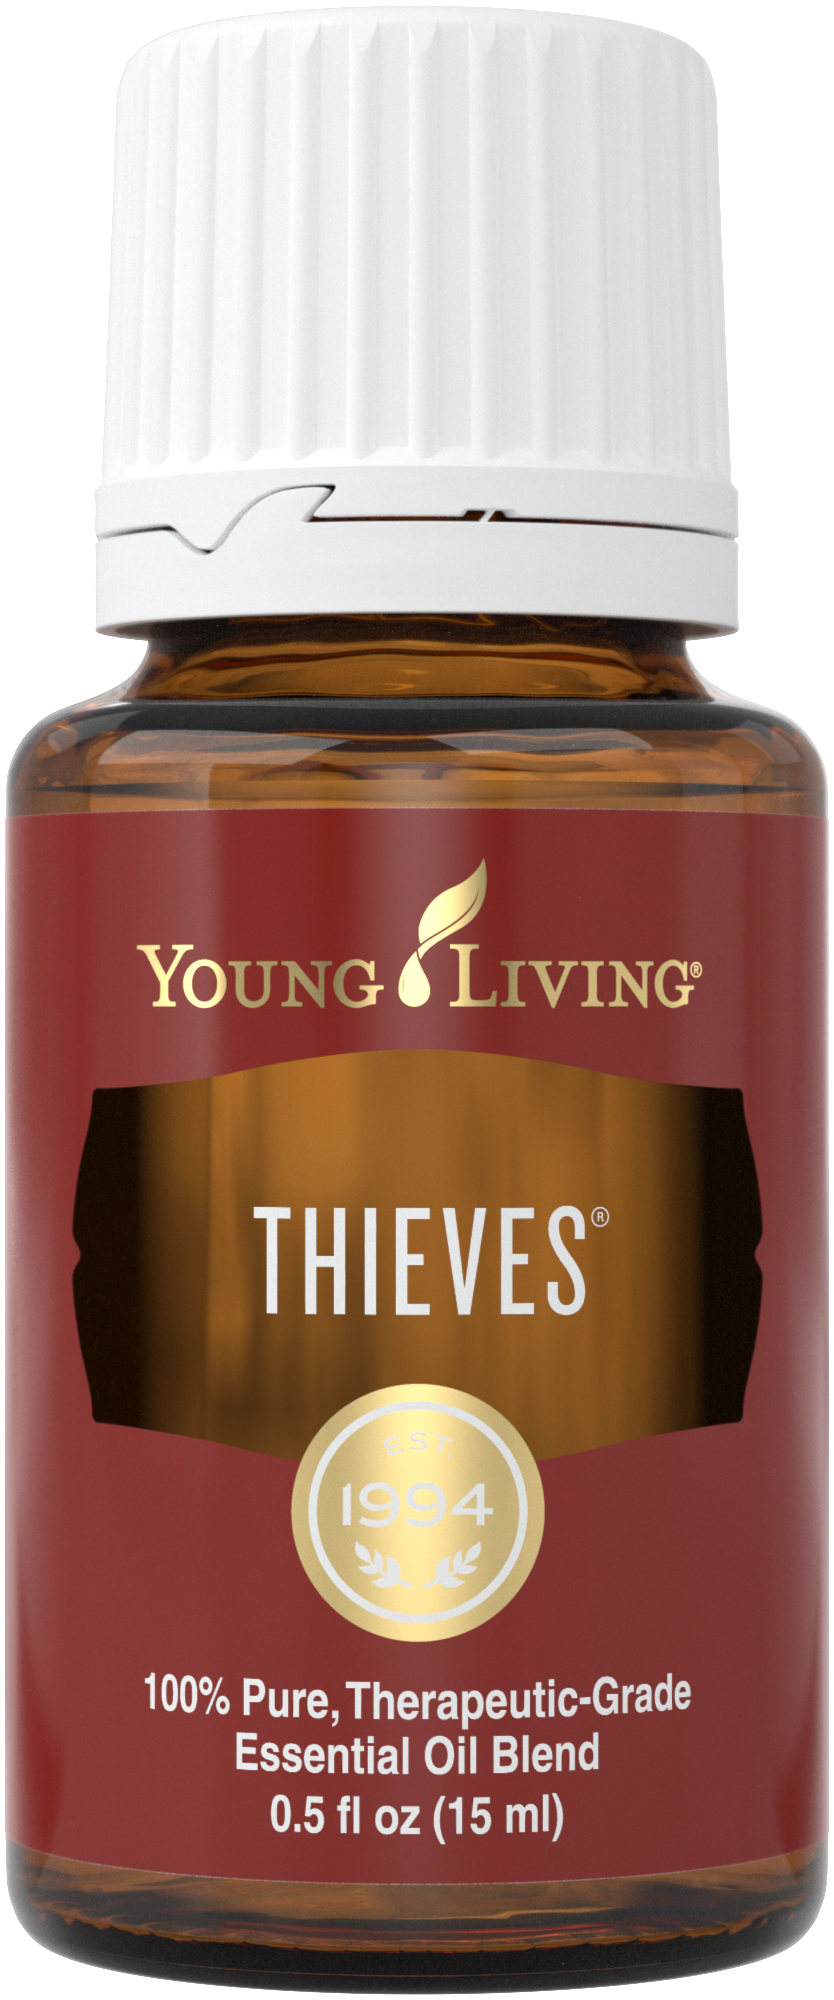 Young Living Aceite esencial Thieves, 15ml